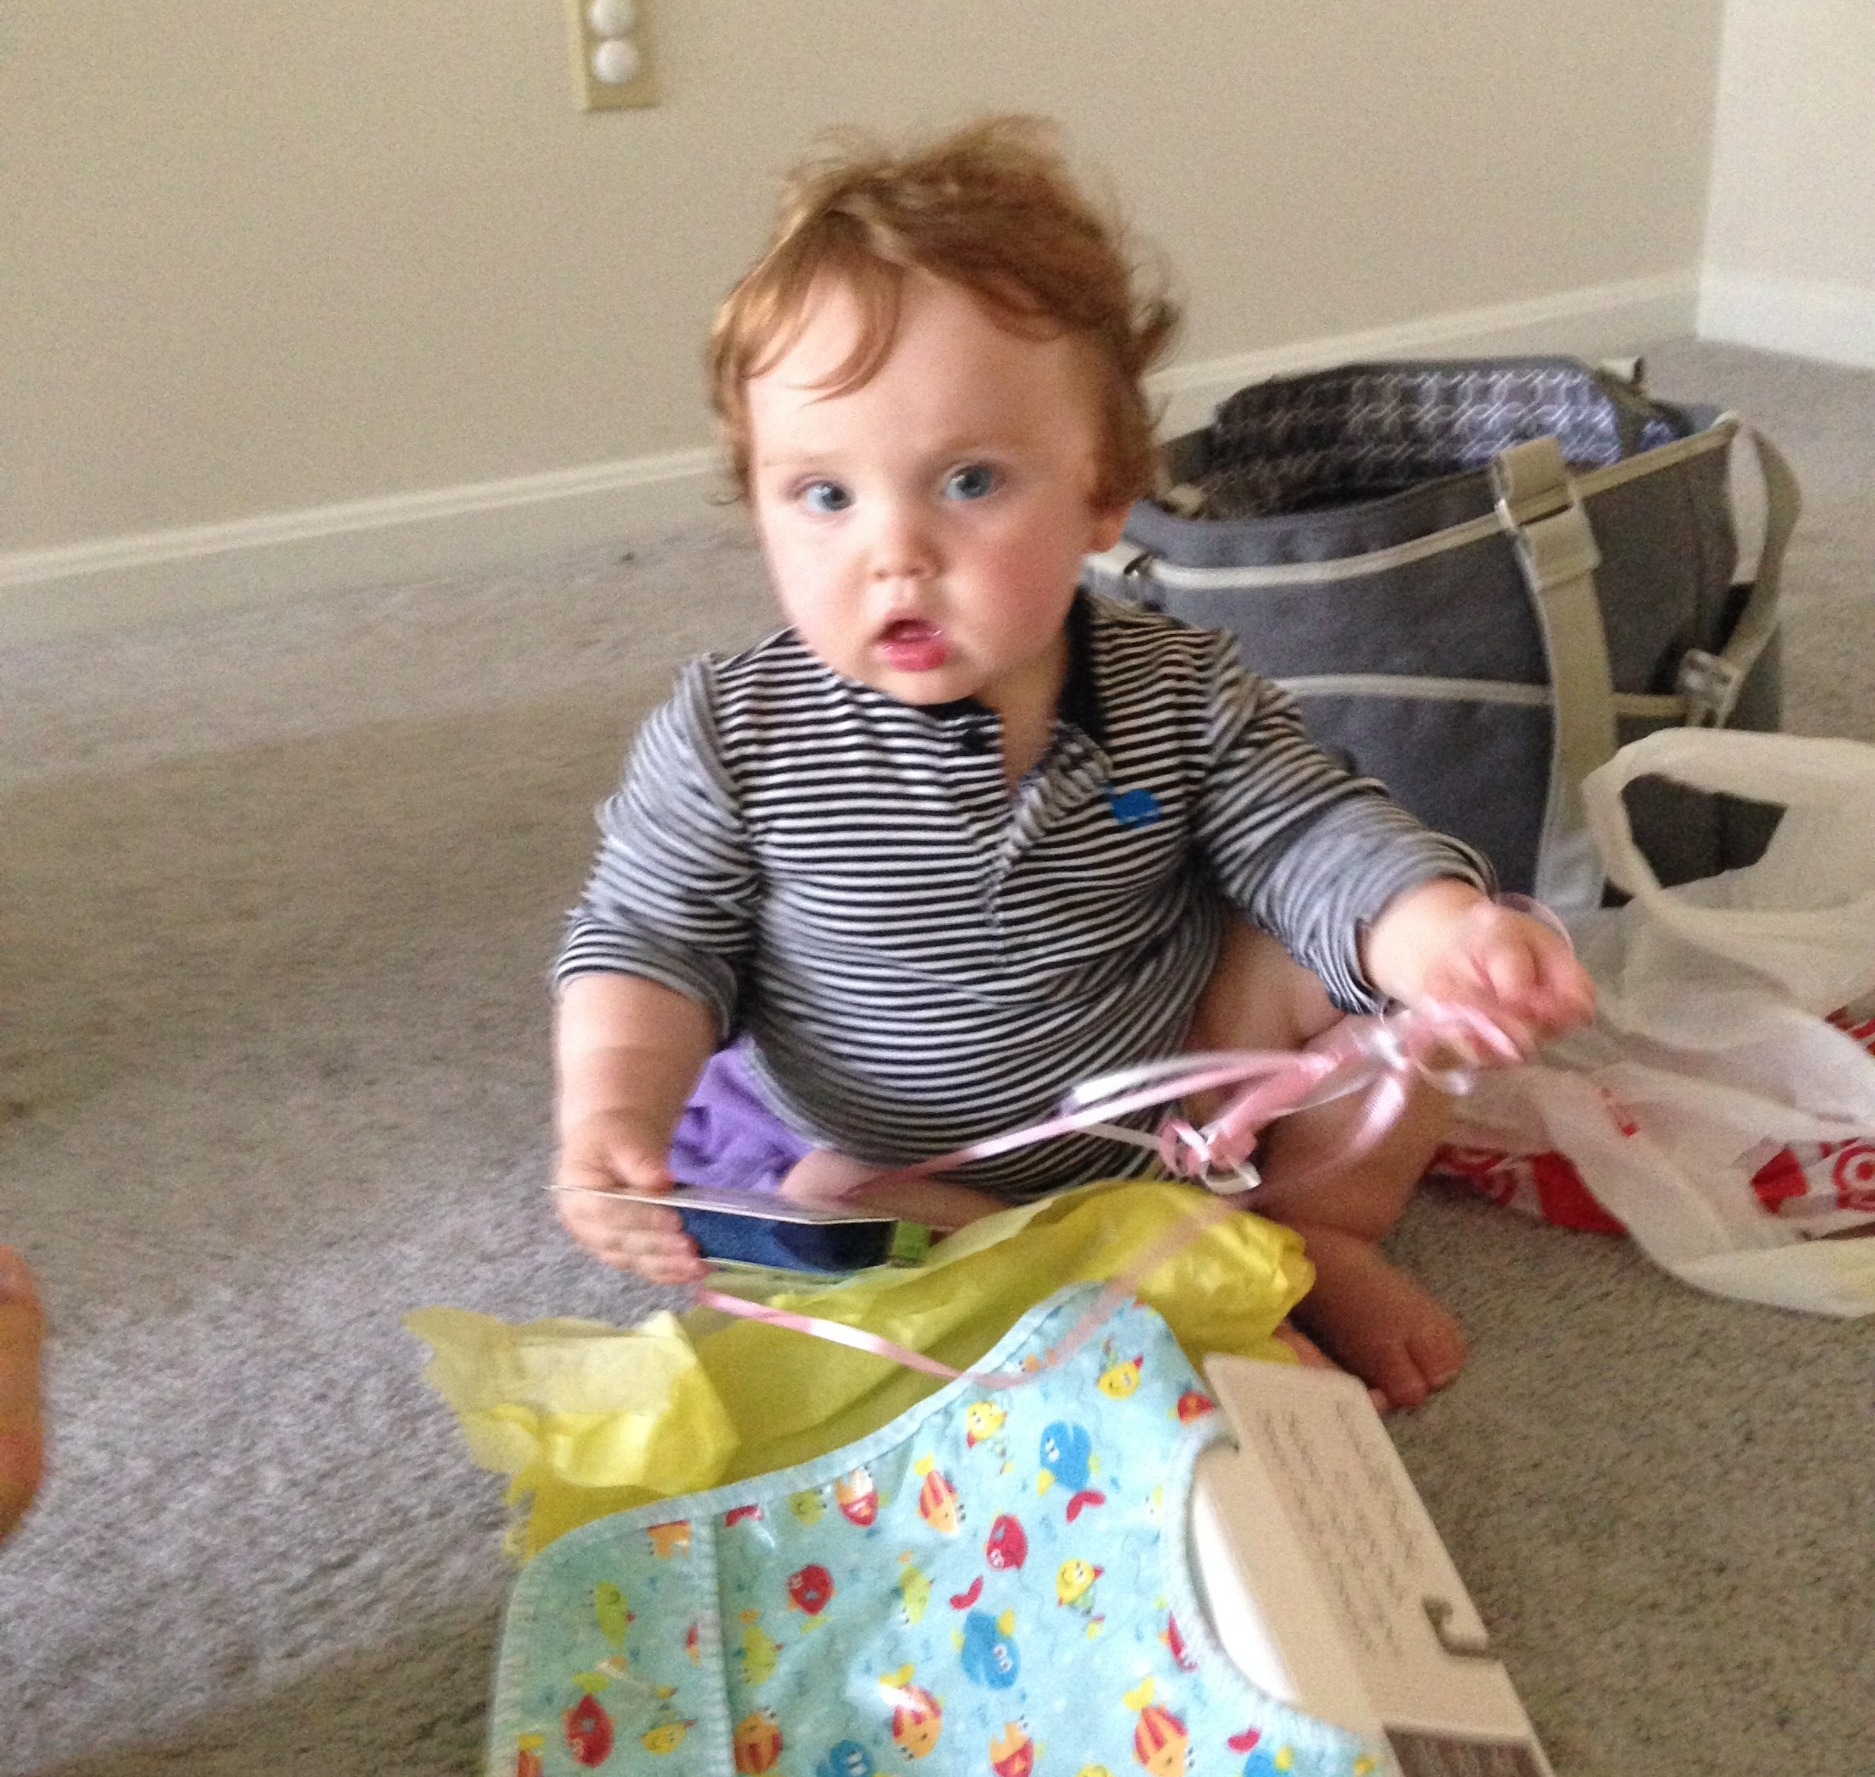 Your first birthday was the day we moved into our apartment with no furniture (and no idea where it was or when it was coming). You got to play with colorful paper and eat a cupcake, so you seemed generally all right.